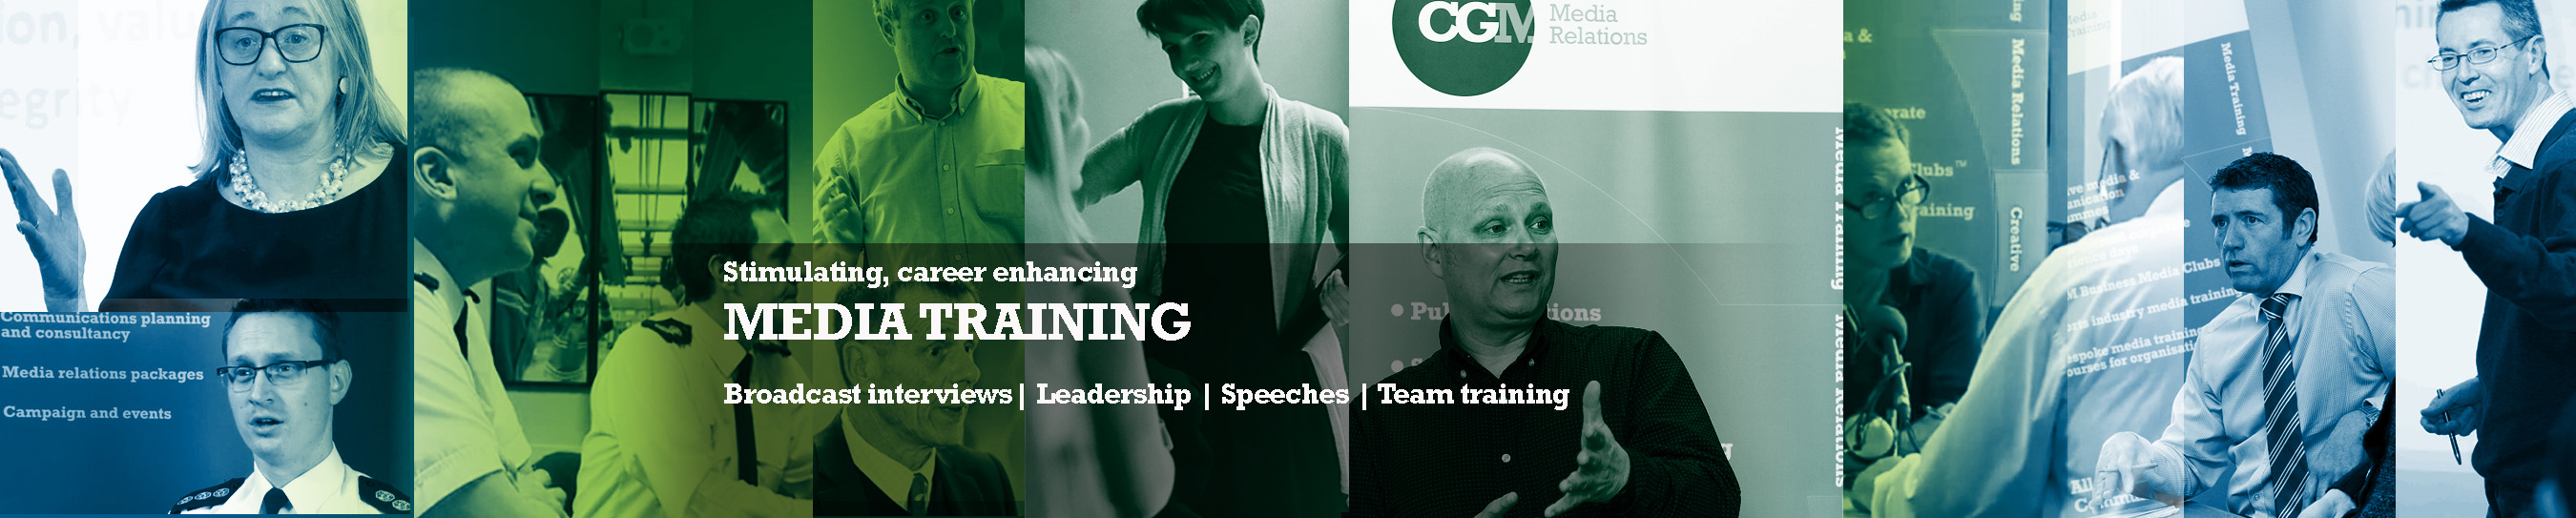 cgmmediatraining